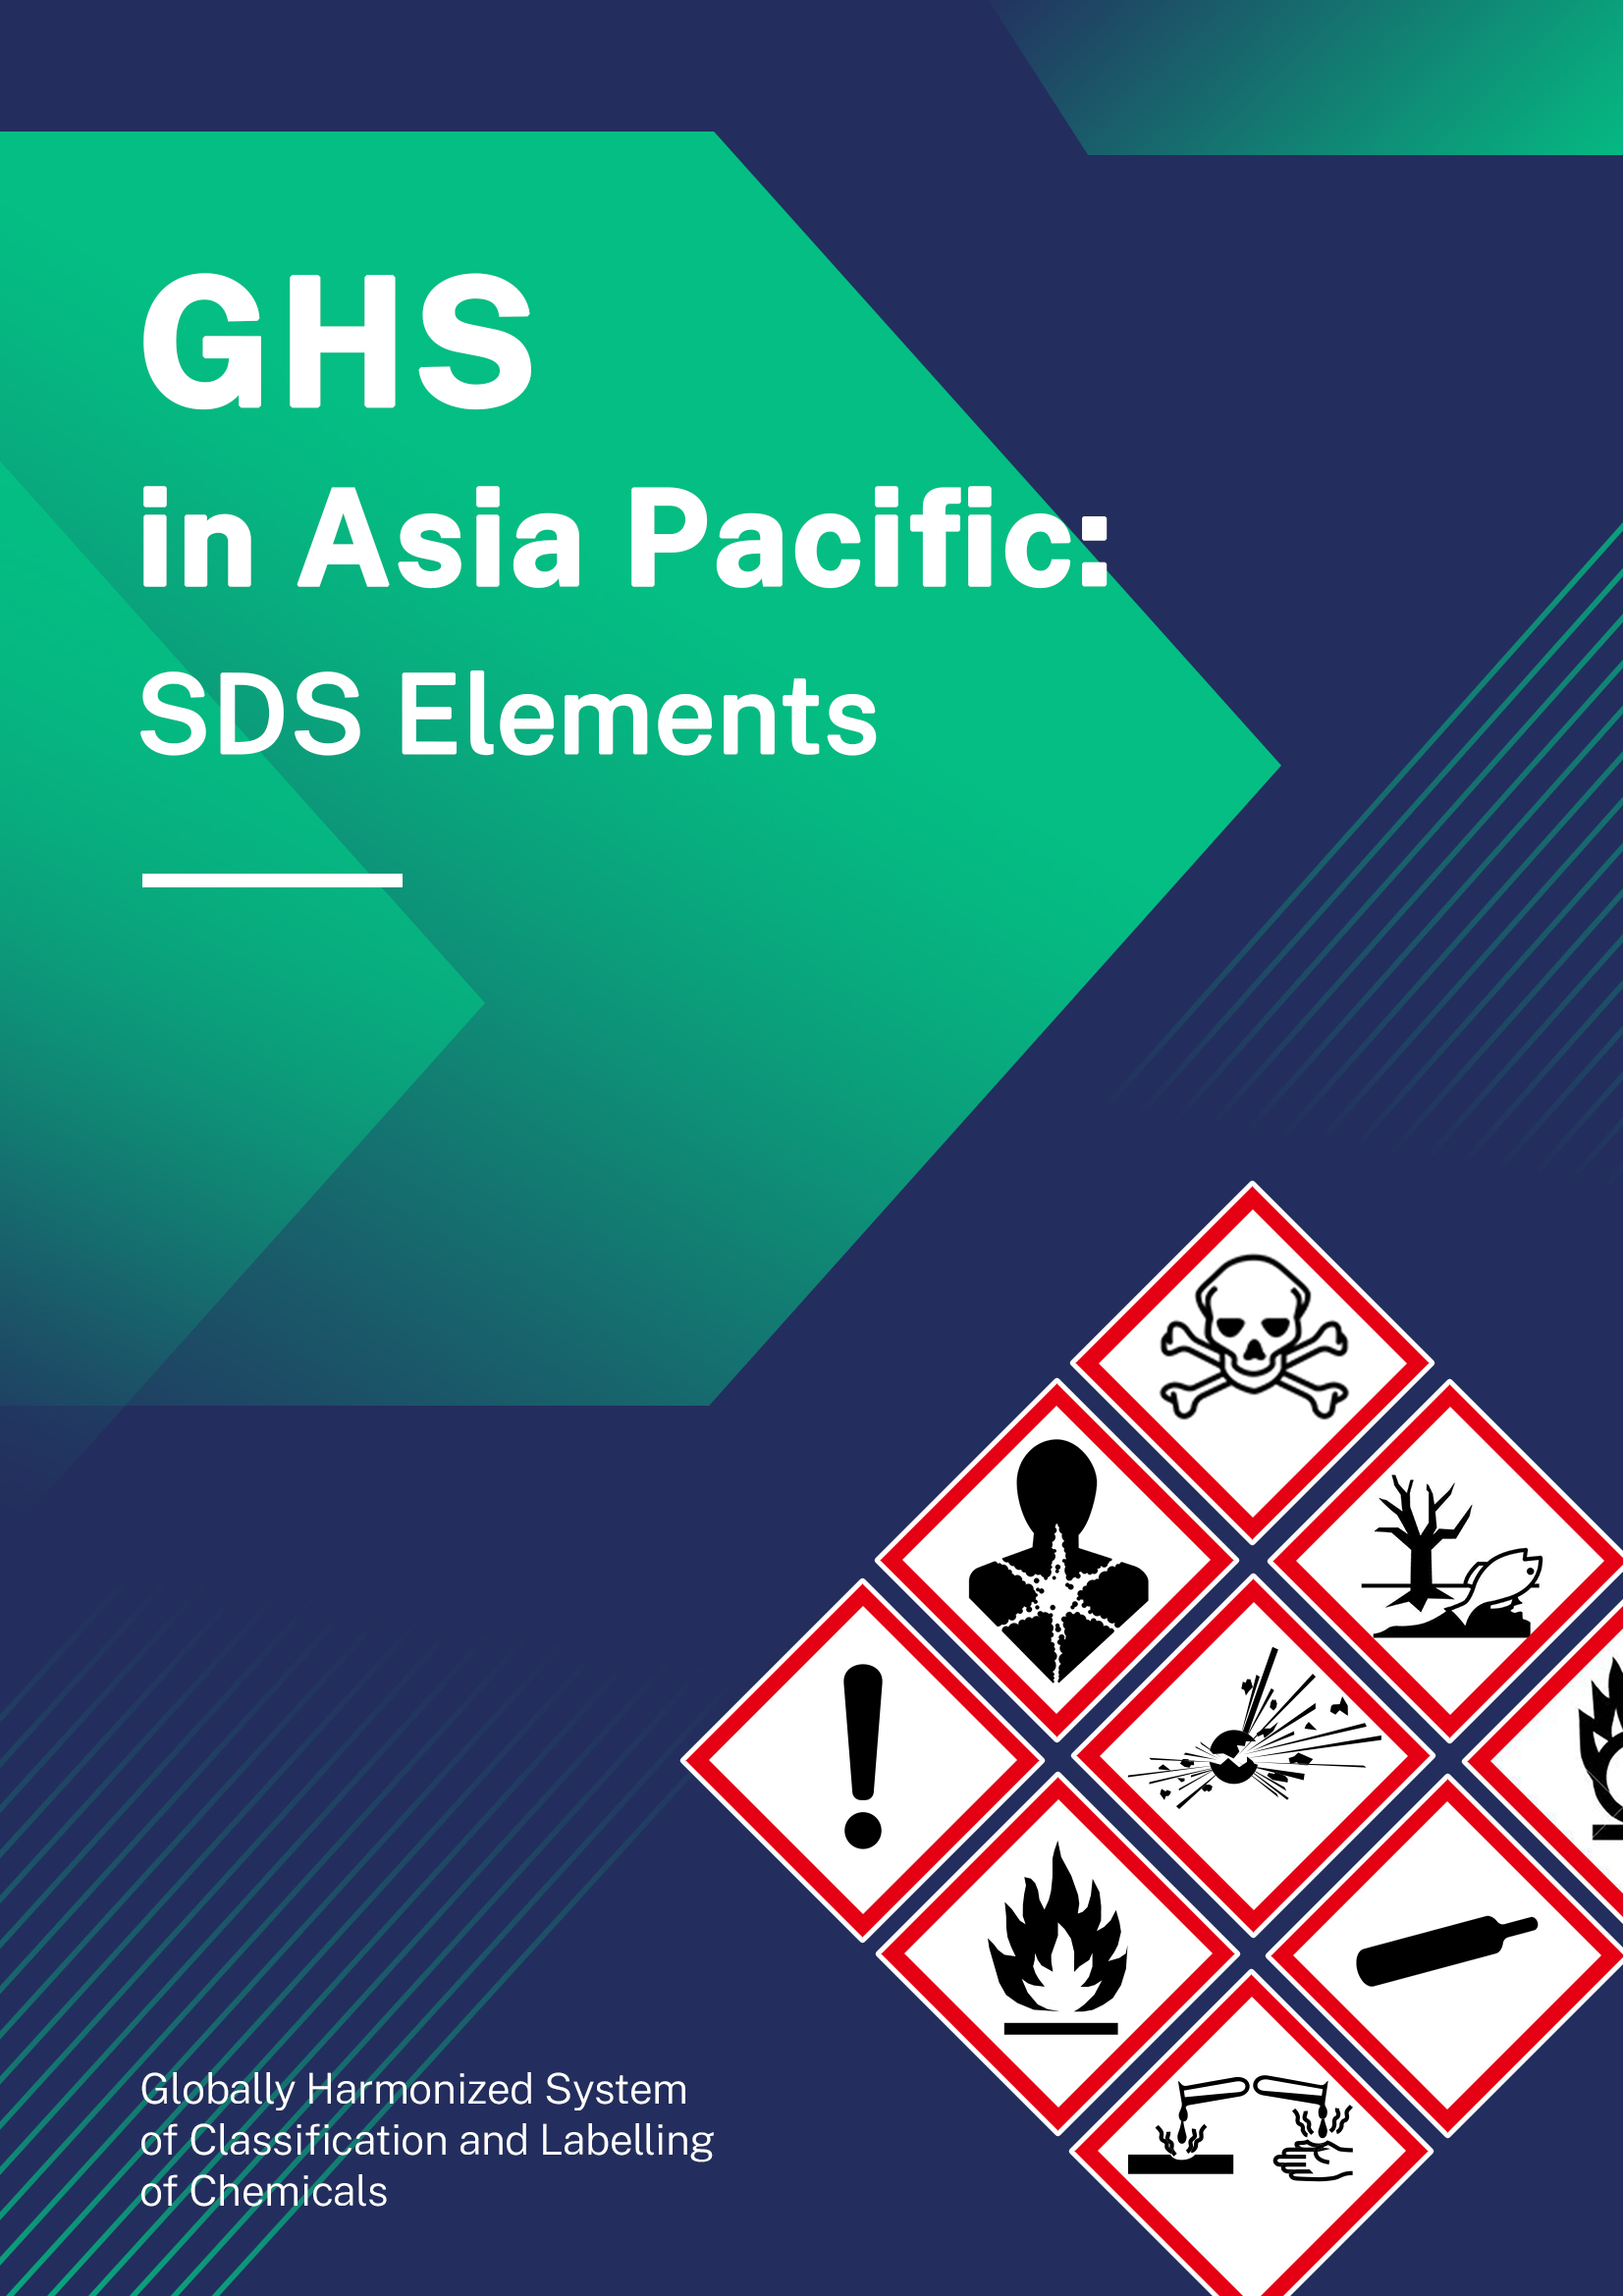 GHS in Asia Pacific: SDS Elements